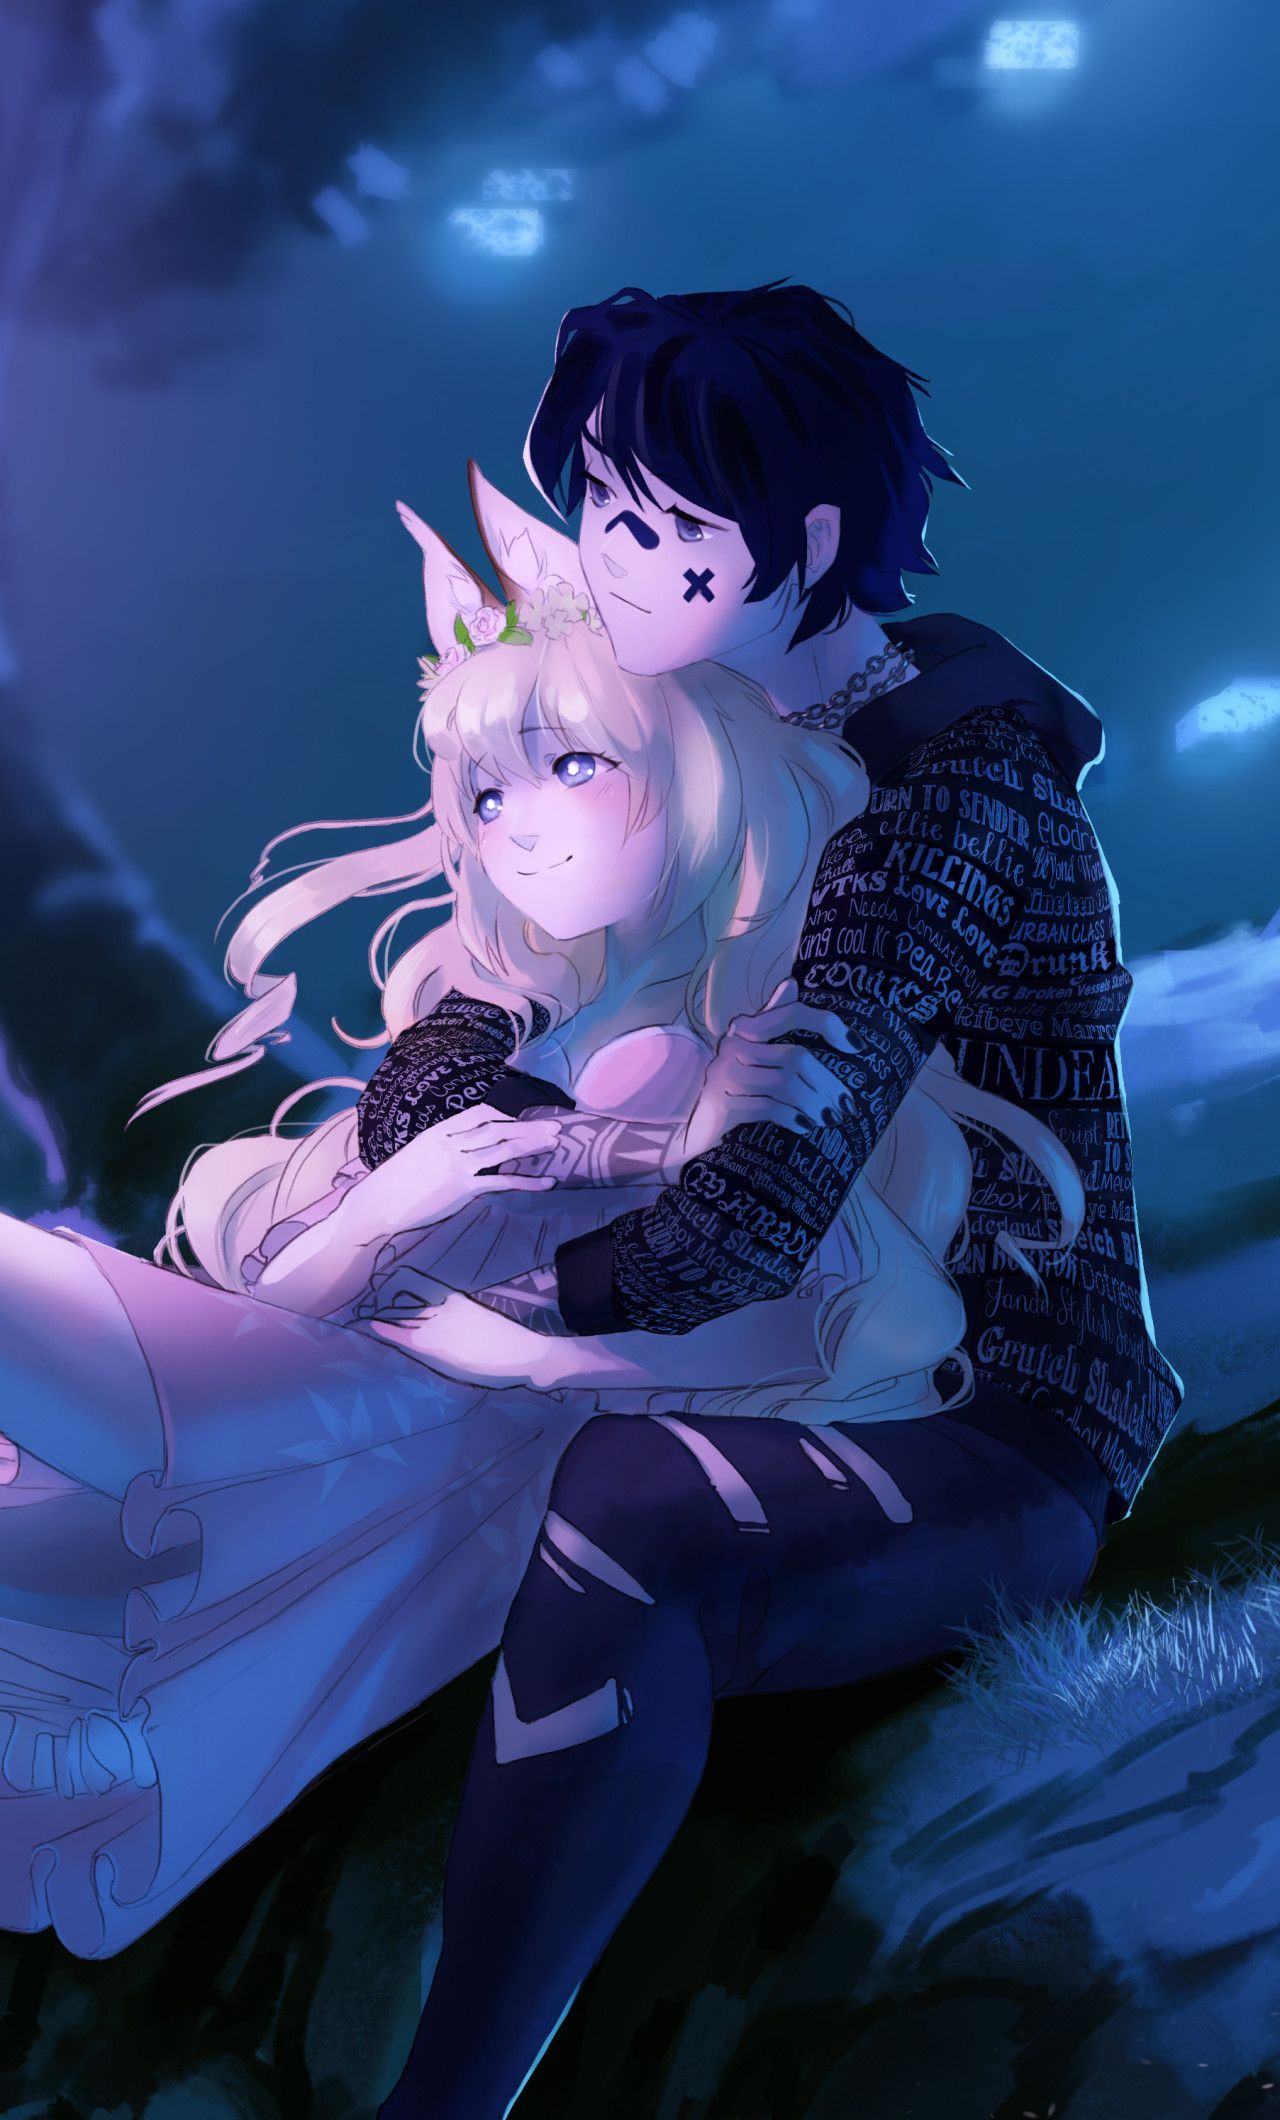 Anime Couple Wallpaper 4k 1280x2120 Embraced And Endeared Anime Couple 4k Iphone 6 Hd Anim Android Wallpaper Anime Hd Anime Wallpapers Anime Wallpaper Iphone Anime couple android wallpaper